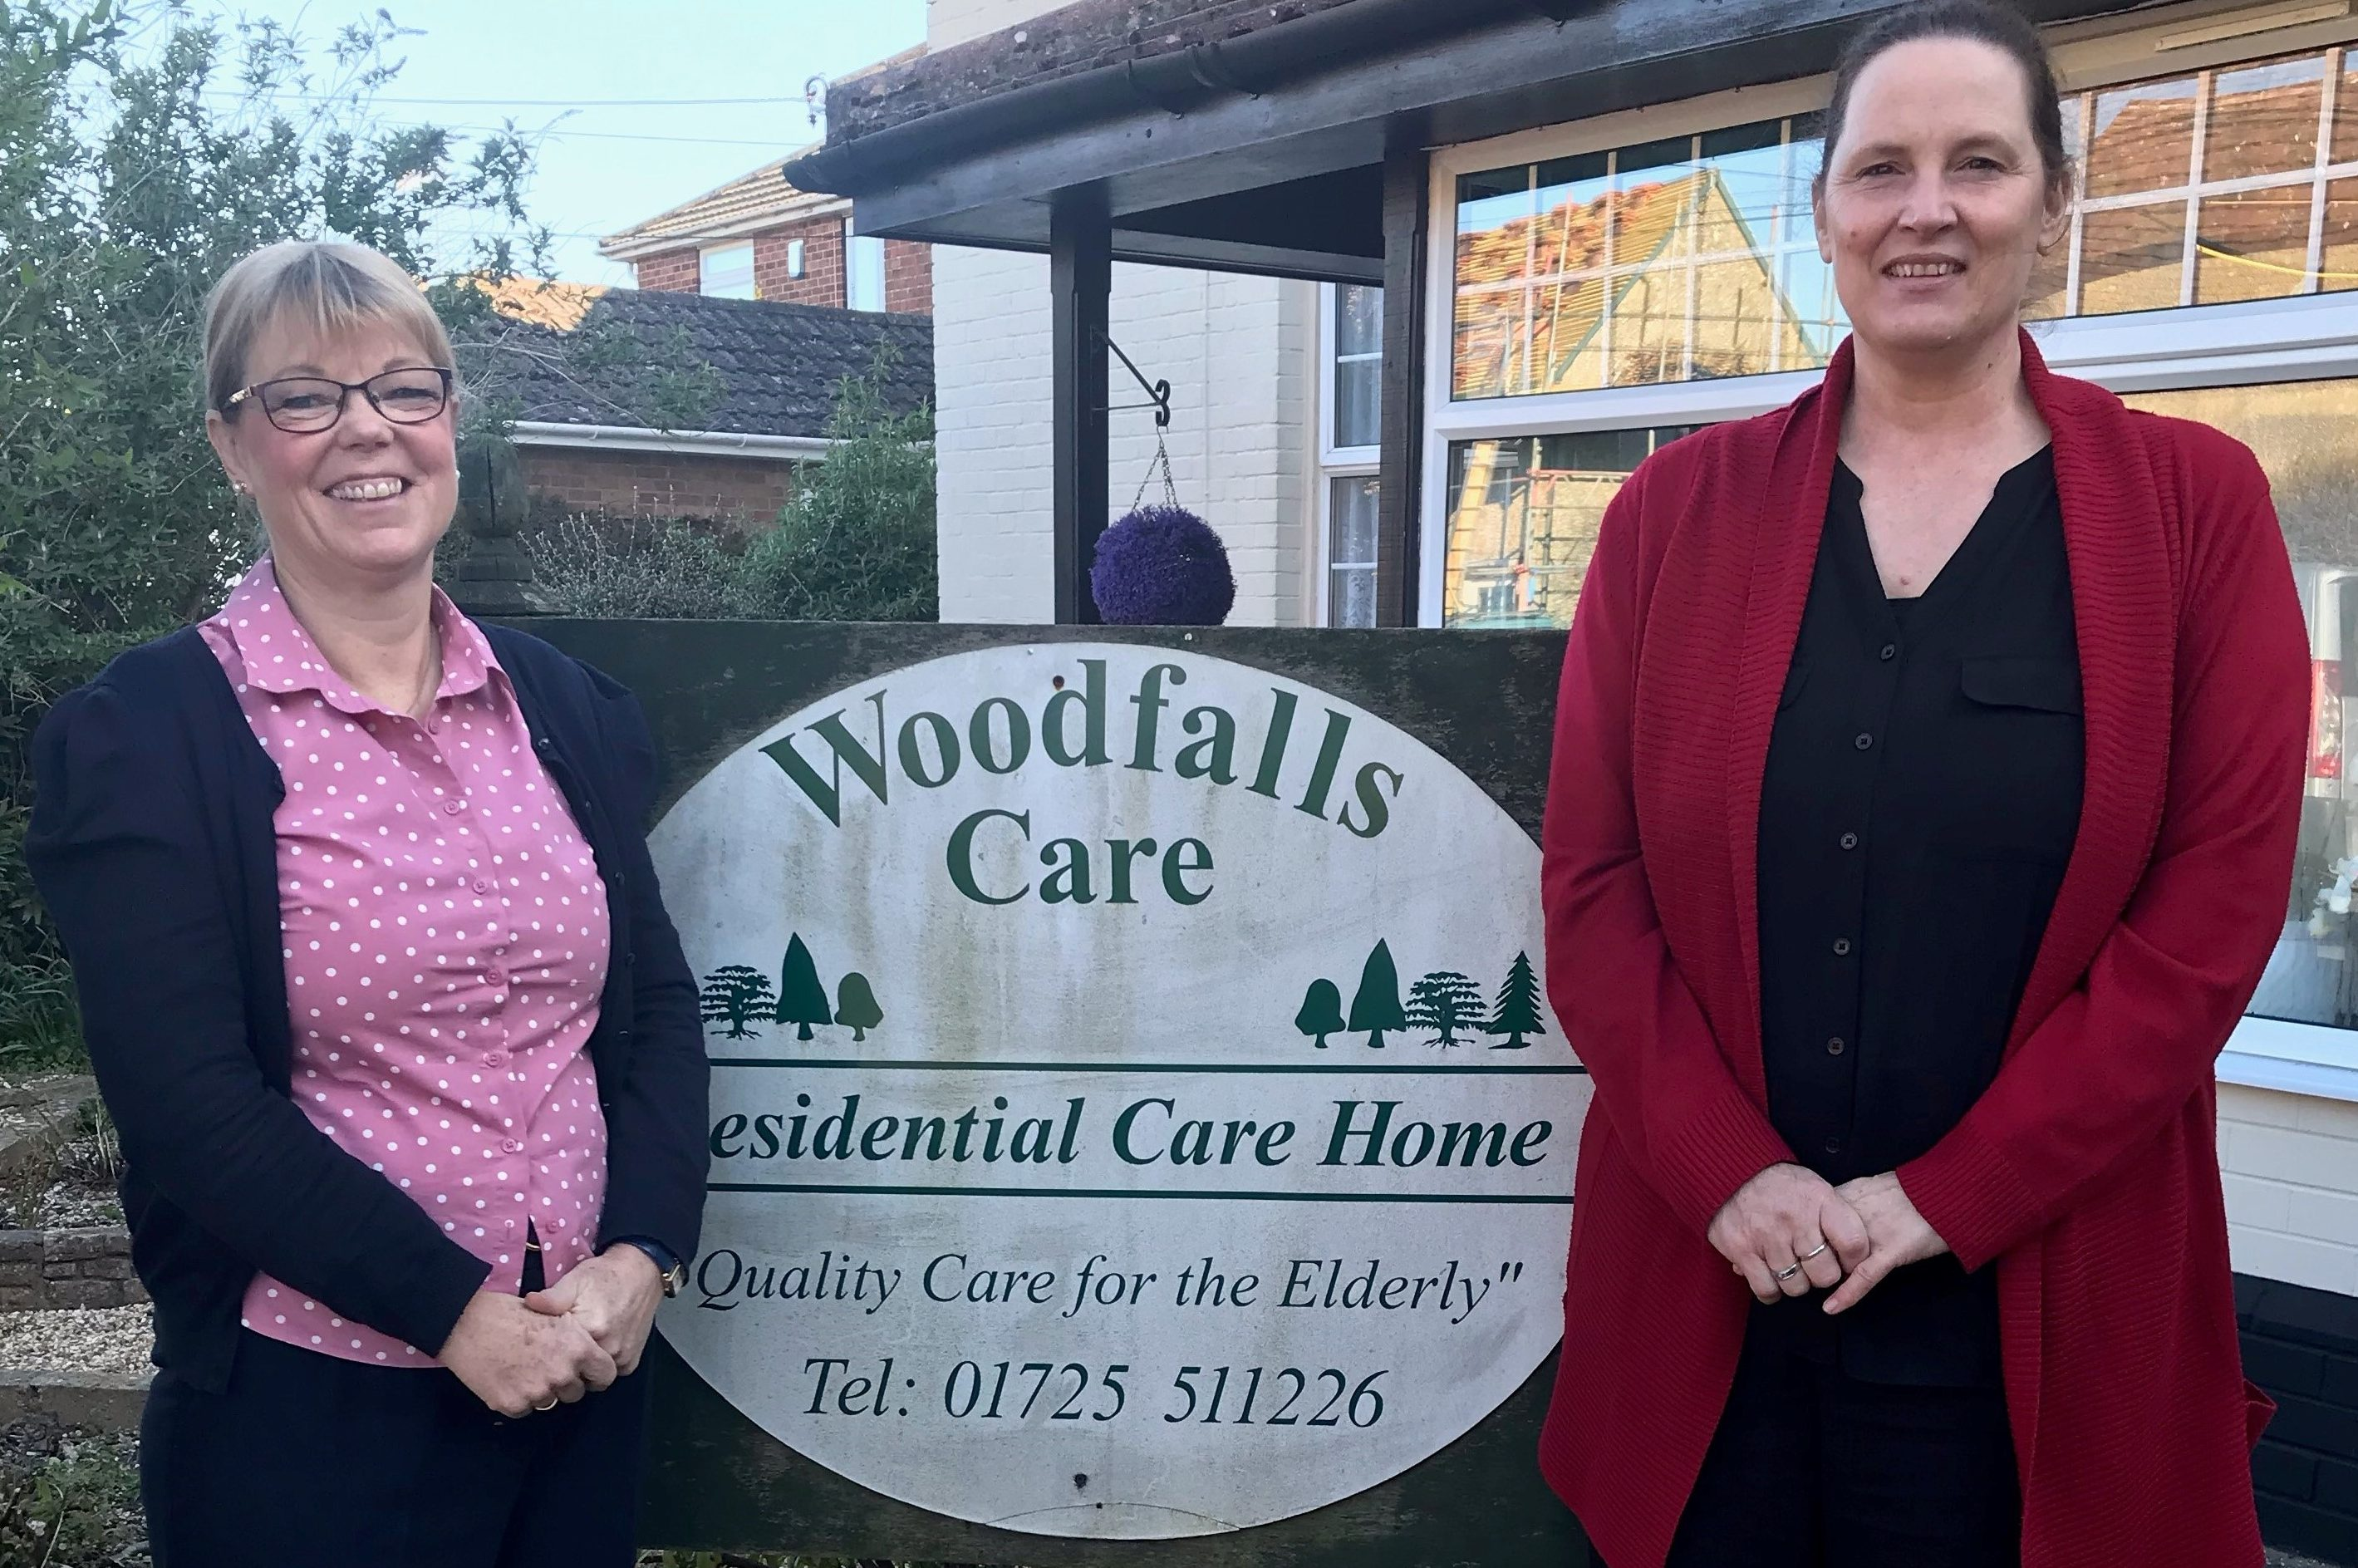 Alison and Pascalle standing beside the care home sign.